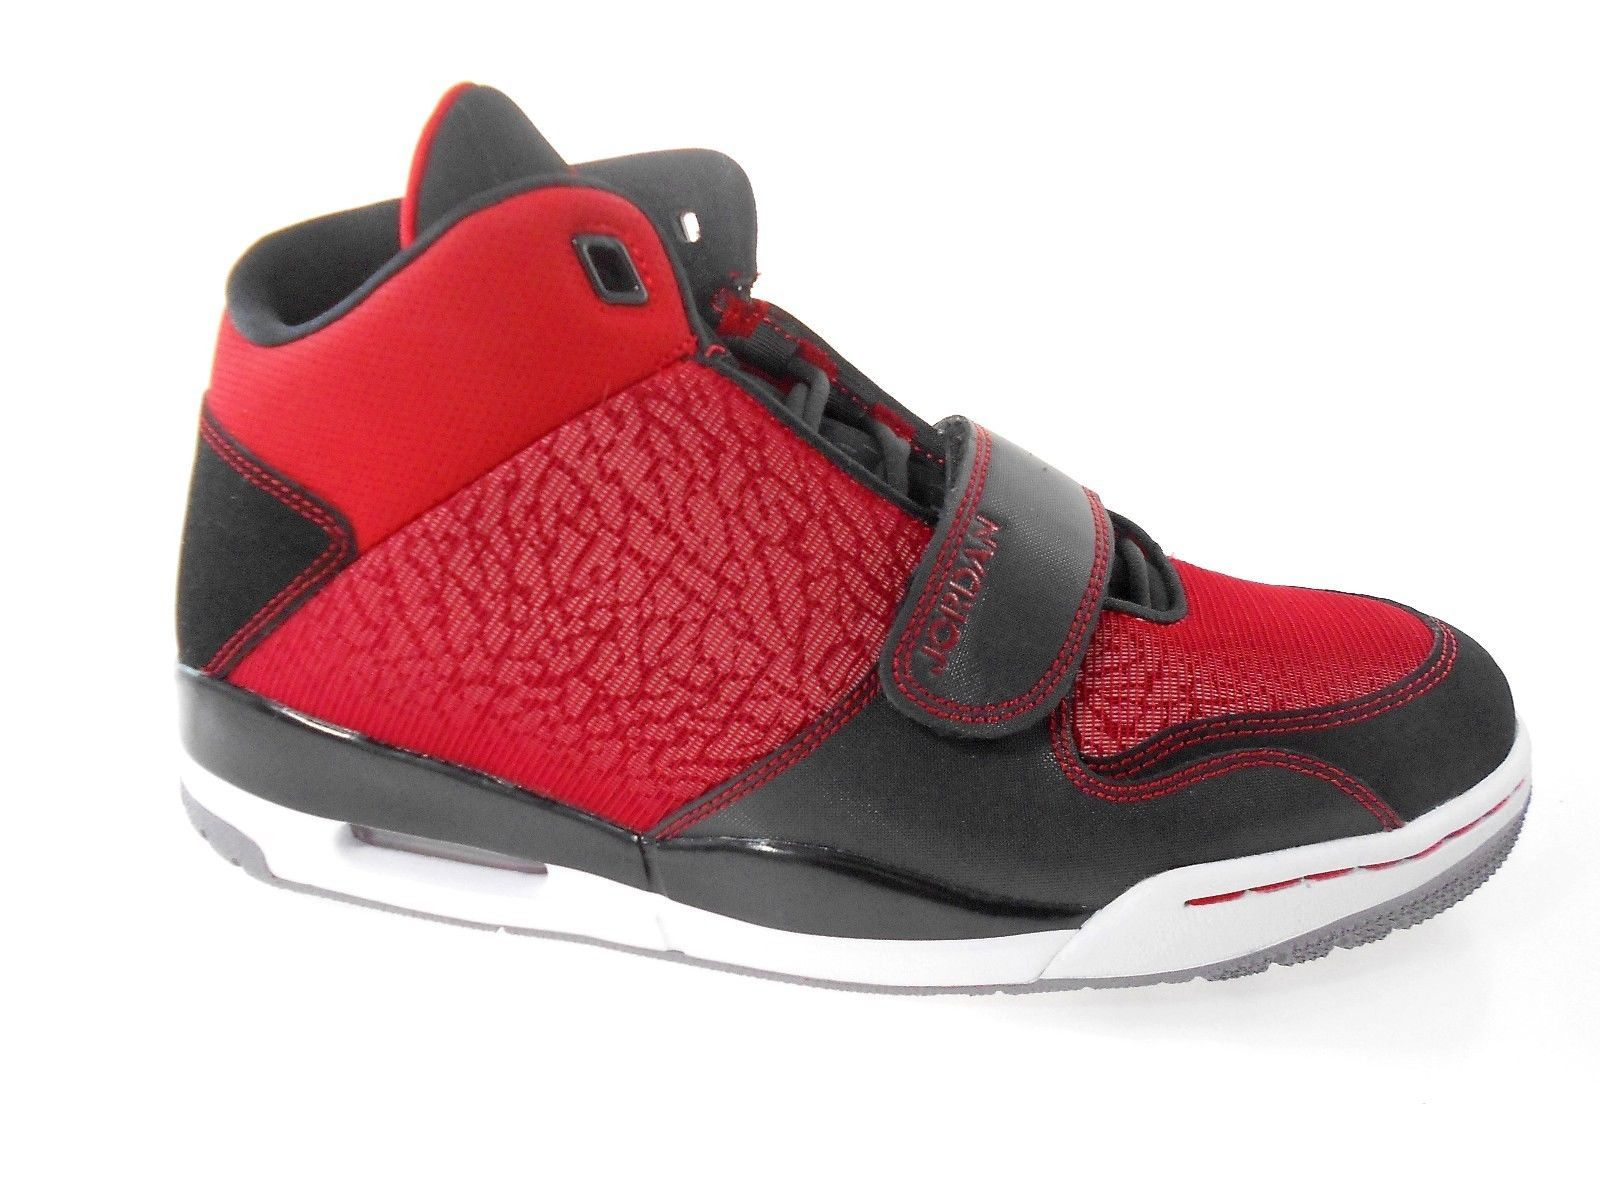 buy popular 118b5 9abcb Nike Jordan Fltclb 90'S Men's RED/BLACK/GREY and 50 similar items